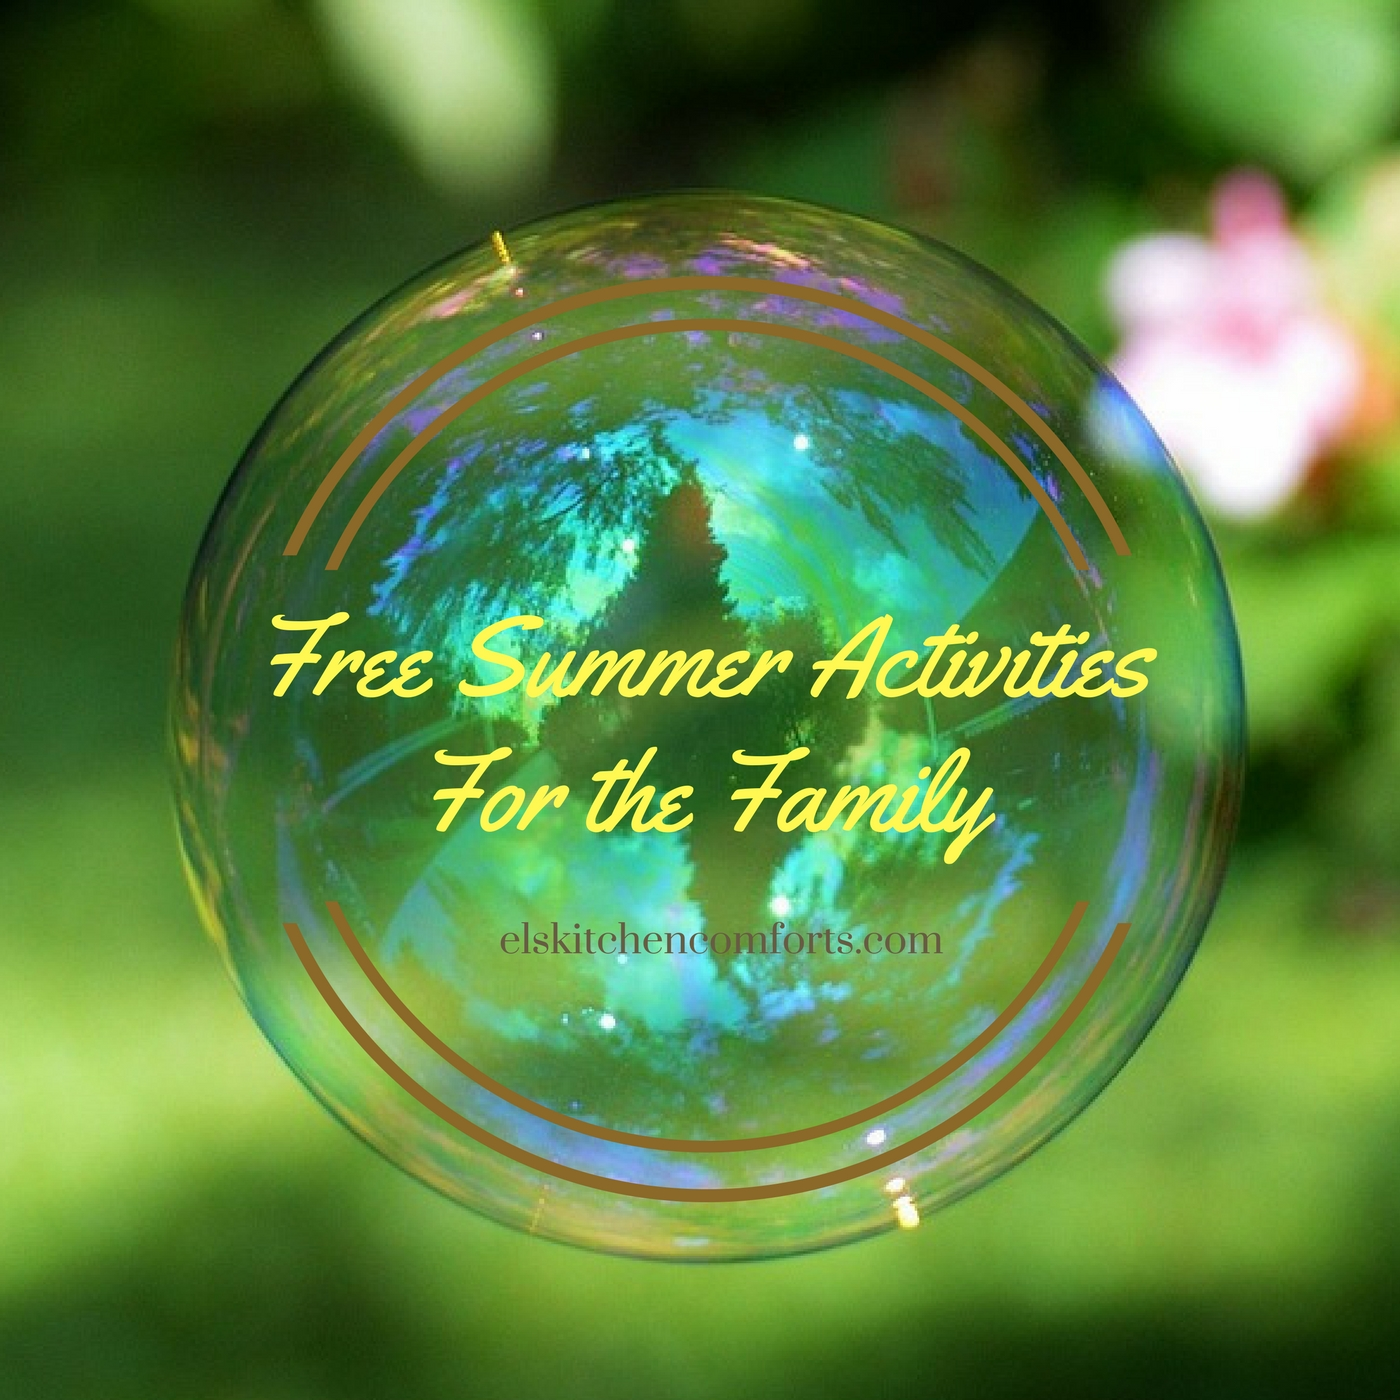 Free Summer Activities for the Fmaily